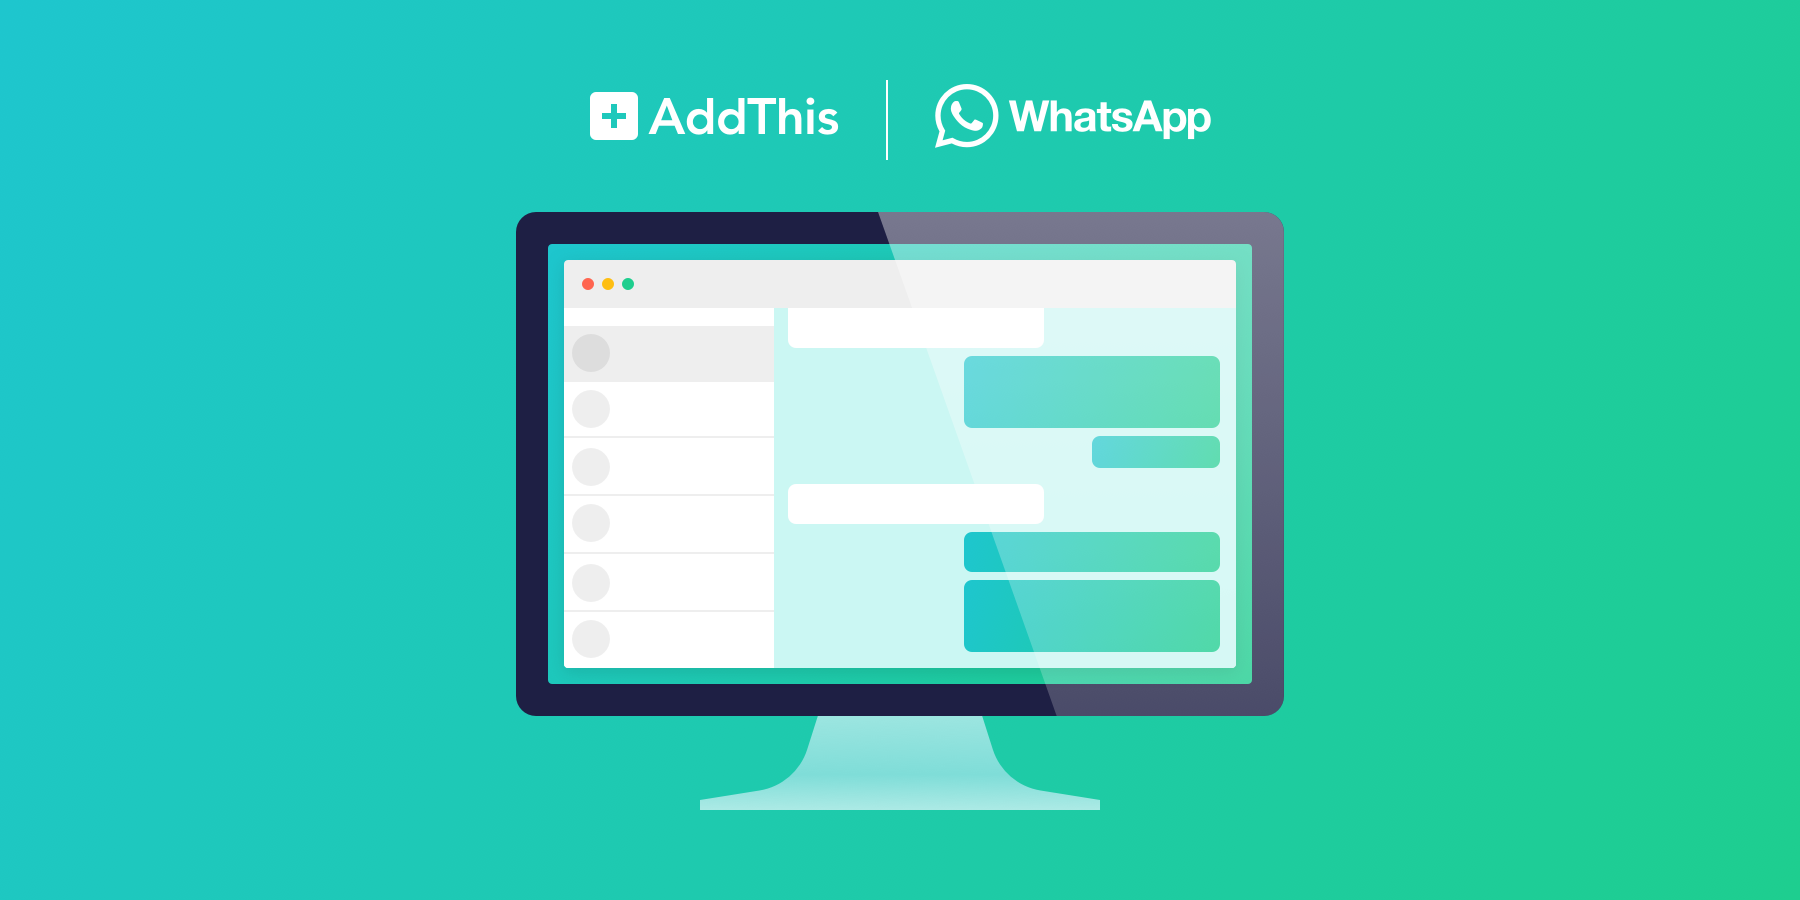 WhatsApp Sharing Now Available on Desktop - AddThis